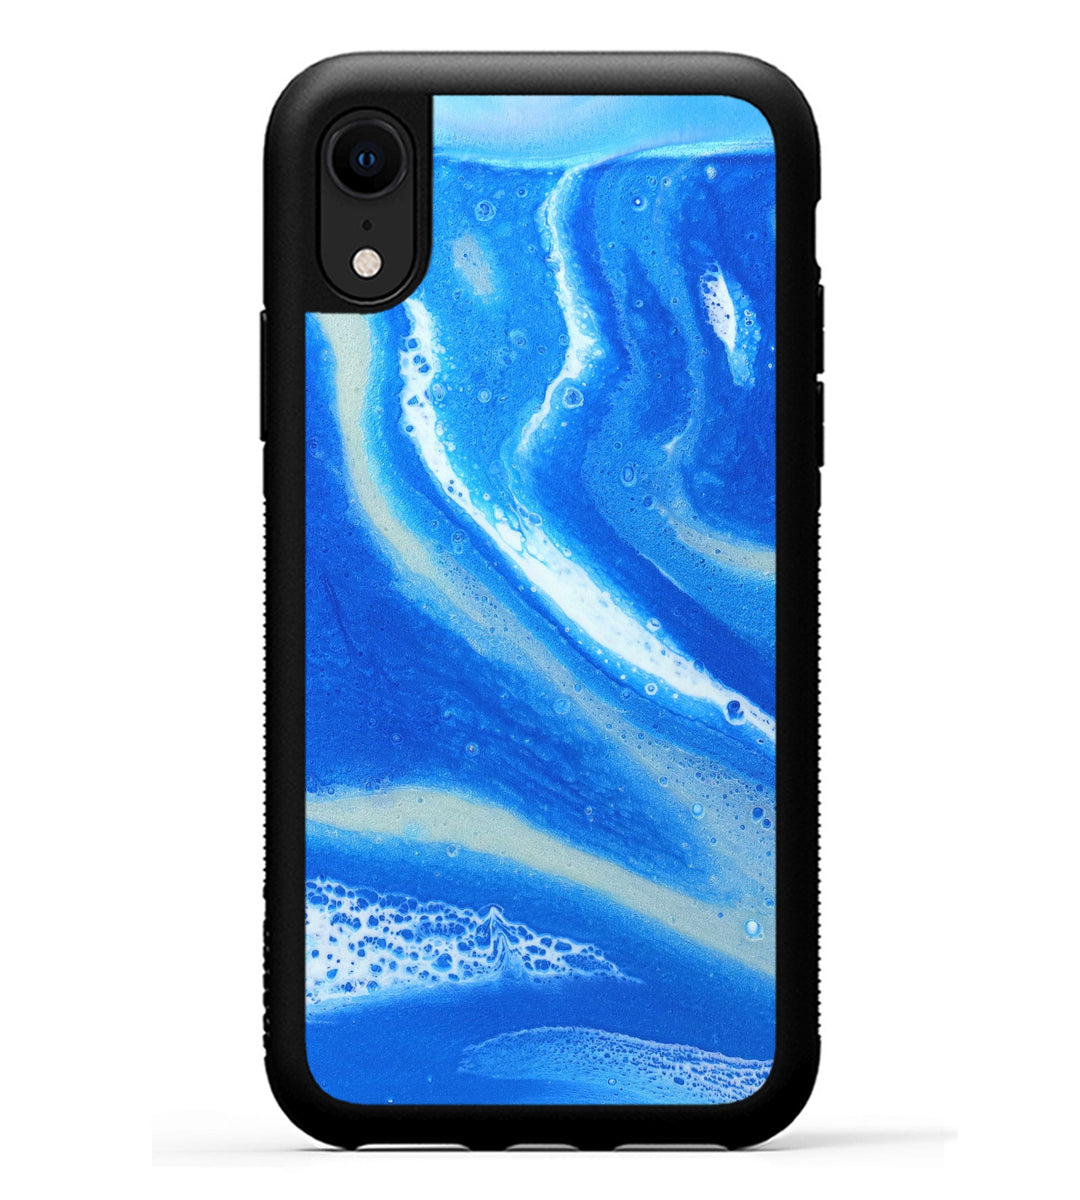 iPhone Xr Case - Salome (Light Blue, 345958)